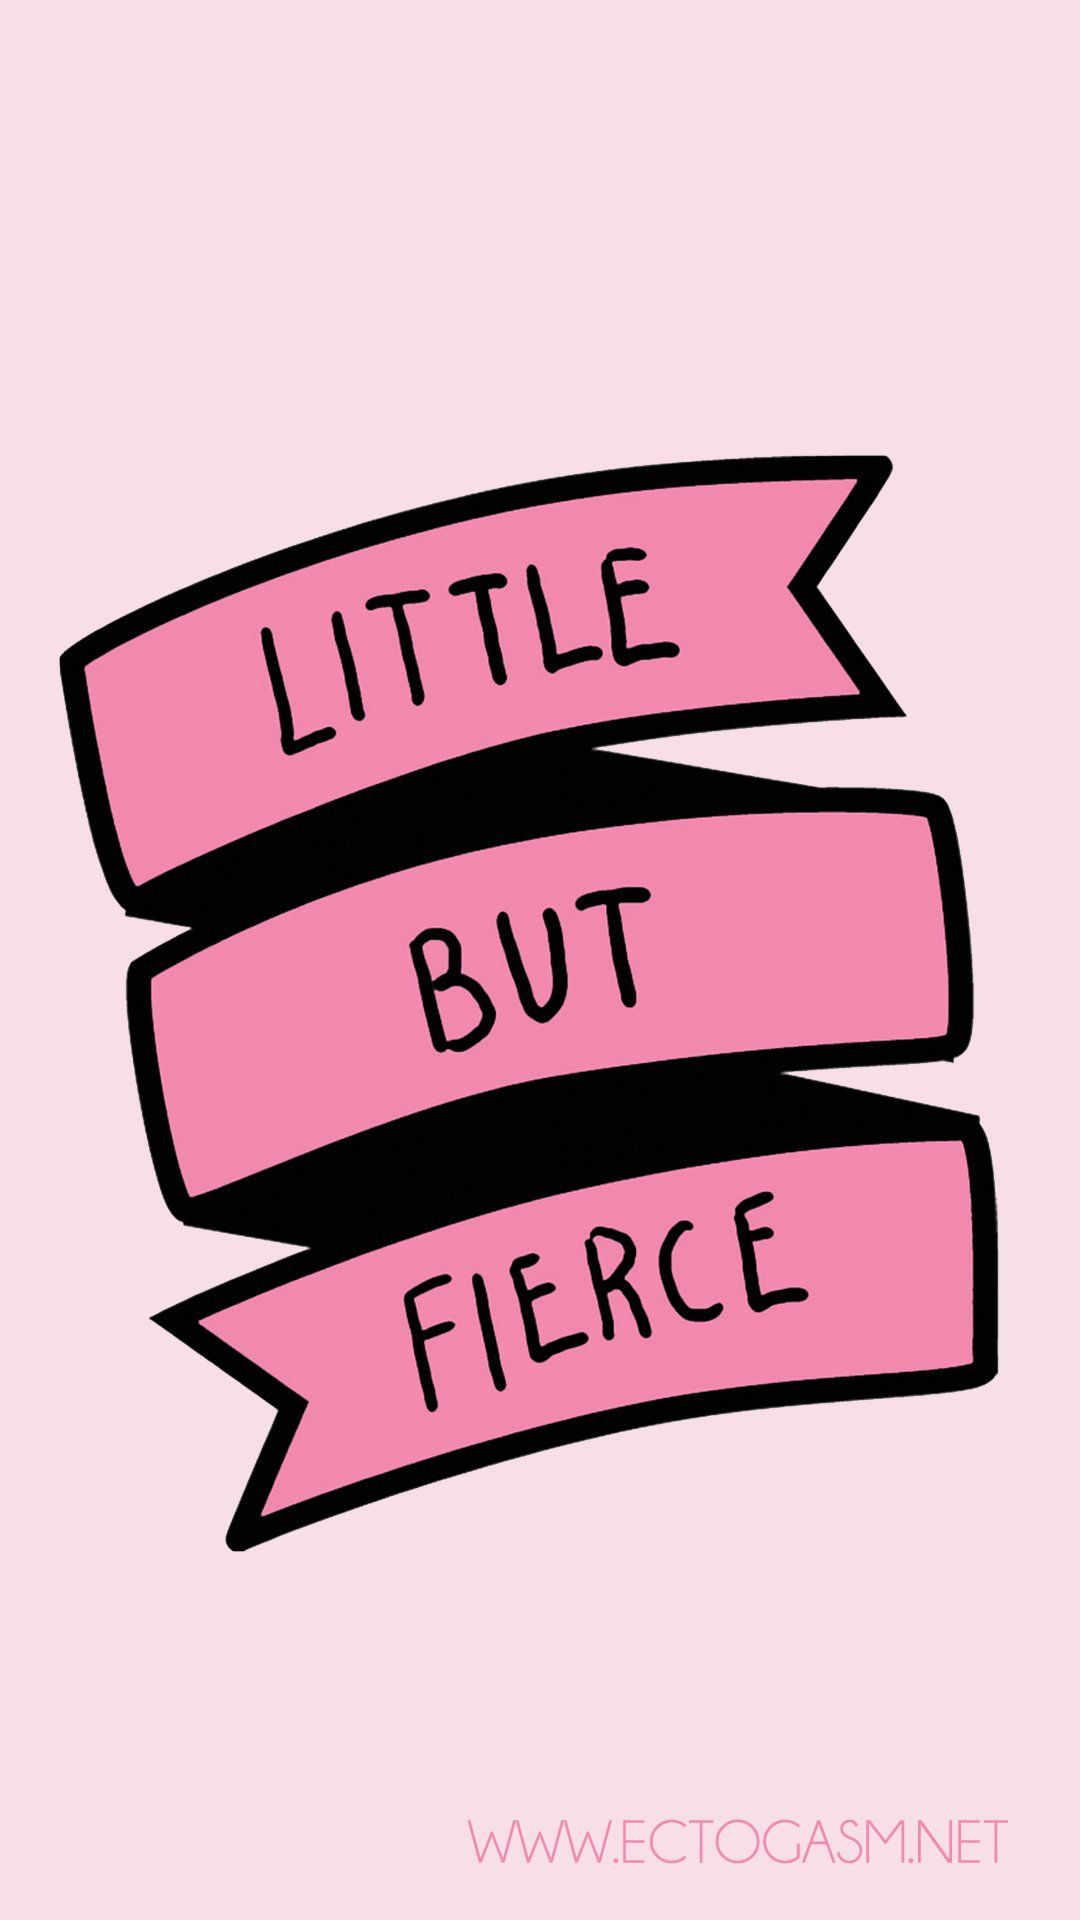 A Free Digital Download Of A Phone Wallpaper In Pink With The Quote Little But Fierce For Women Phone Wallpaper Funny Phone Wallpaper Wallpaper Downloads